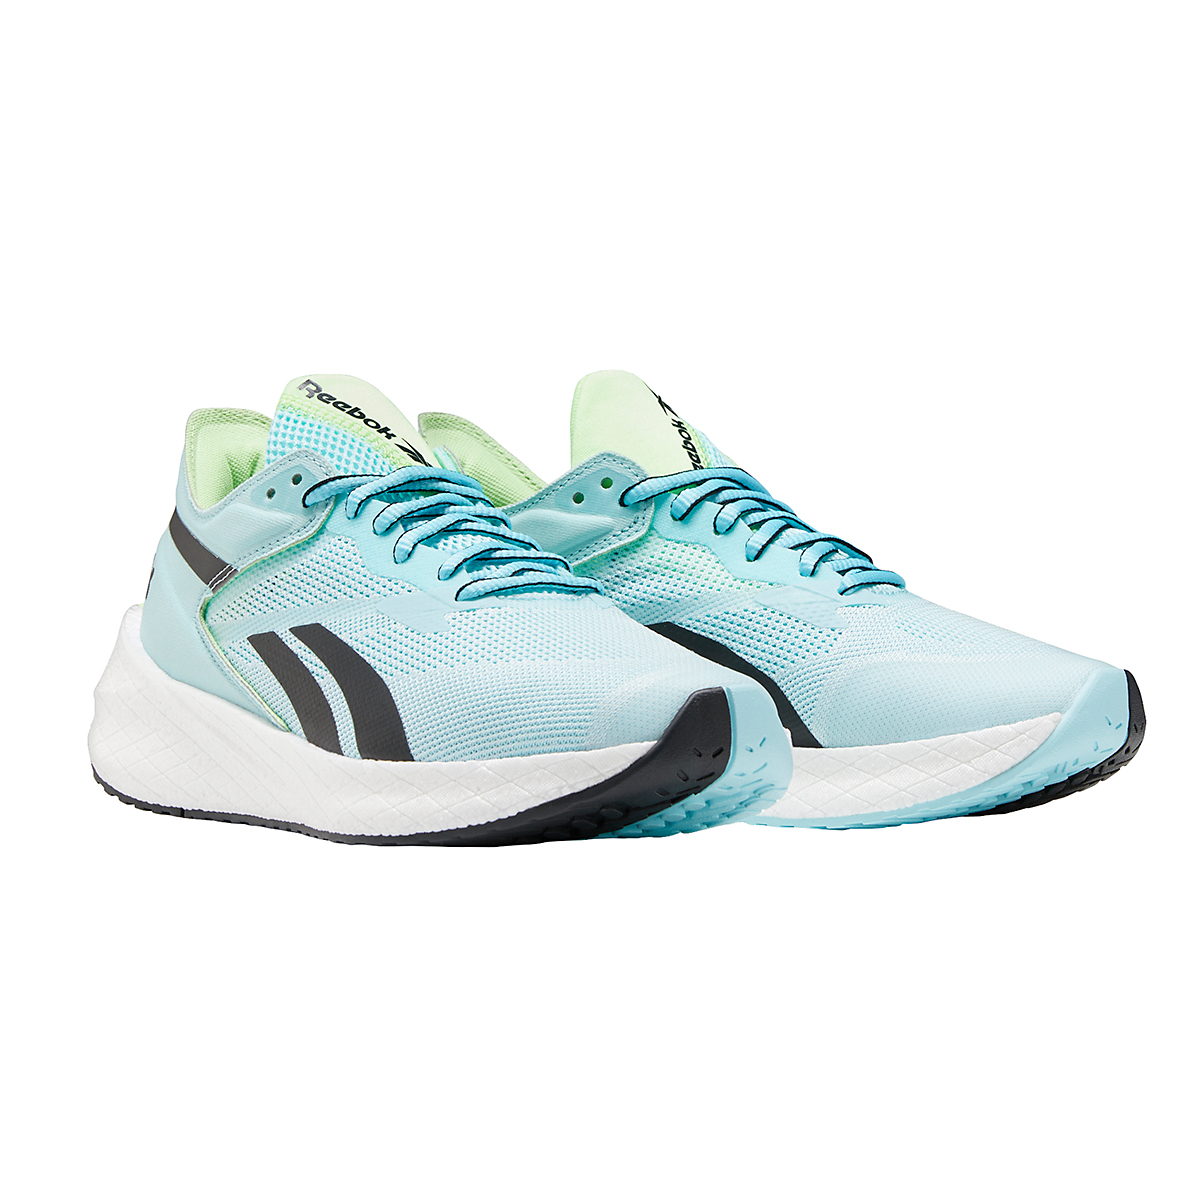 Women's Reebok Floatride Energy Symmetros Running Shoe - Color: Digital Glow/Chalk Blue/Neon Mint - Size: 6 - Width: Regular, Digital Glow/Chalk Blue/Neon Mint, large, image 4